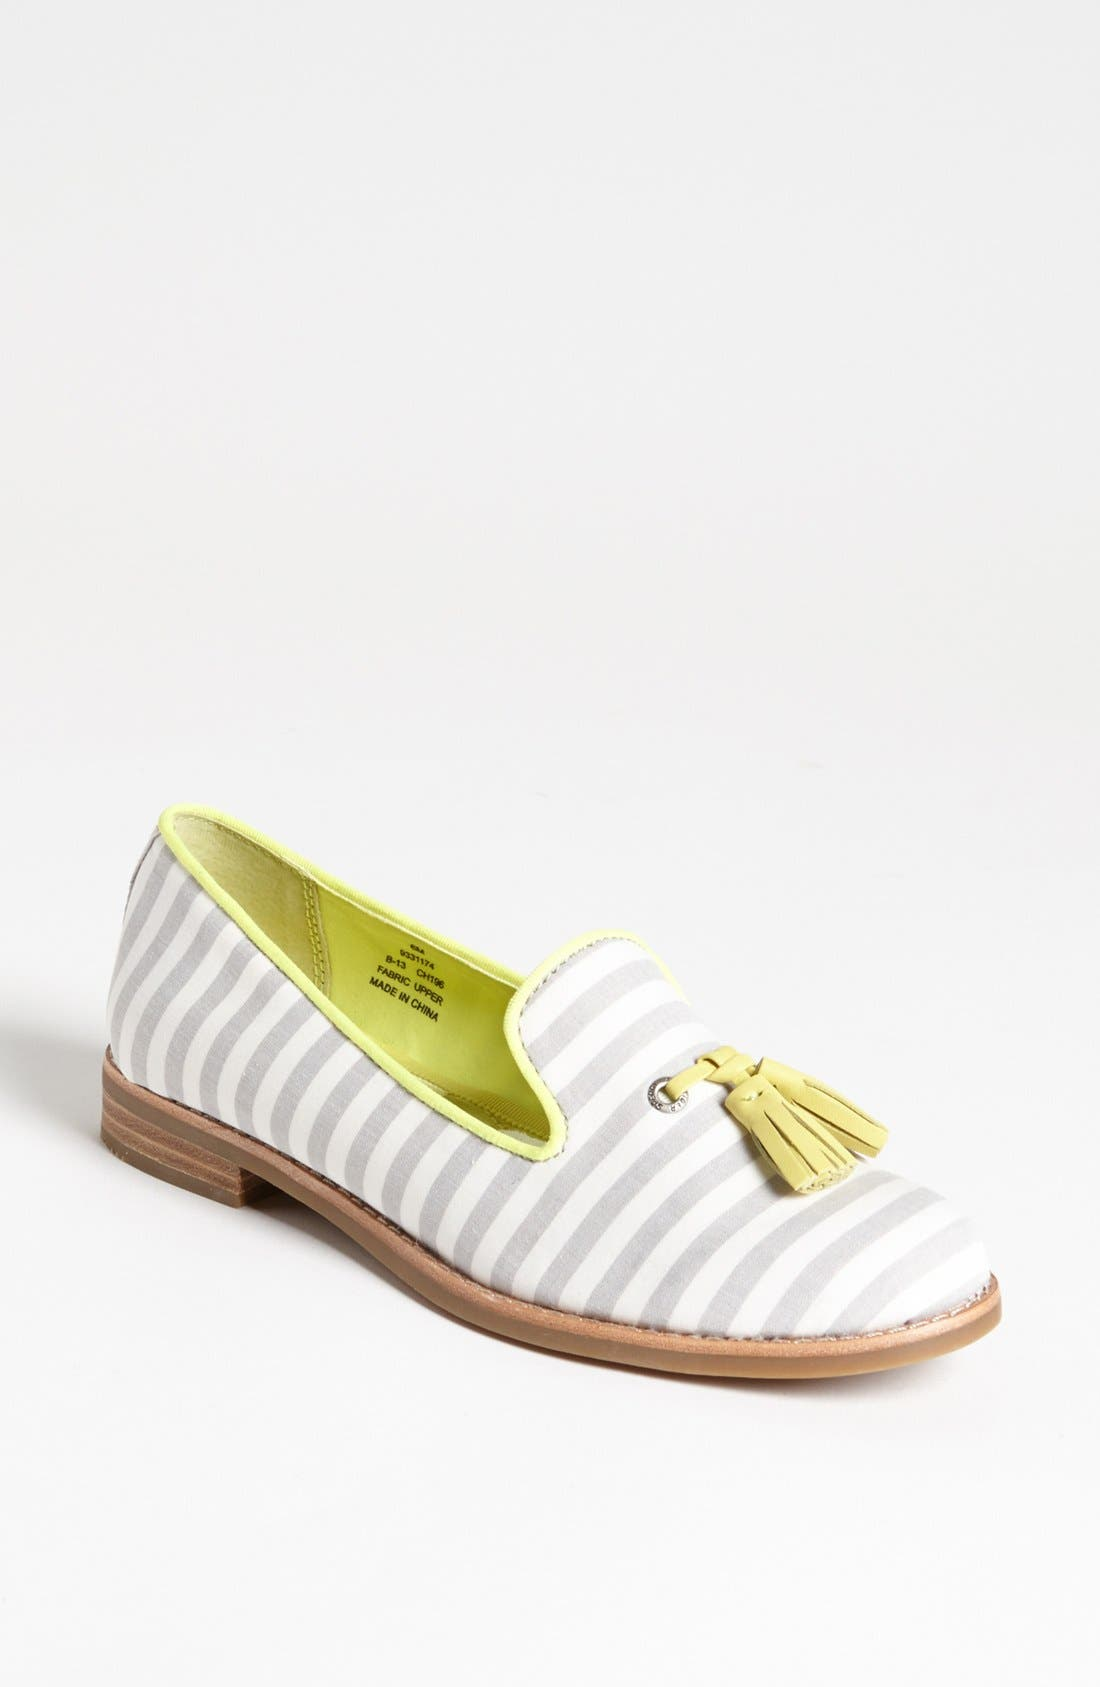 Alternate Image 1 Selected - Sperry Top-Sider® 'Pennington' Flat